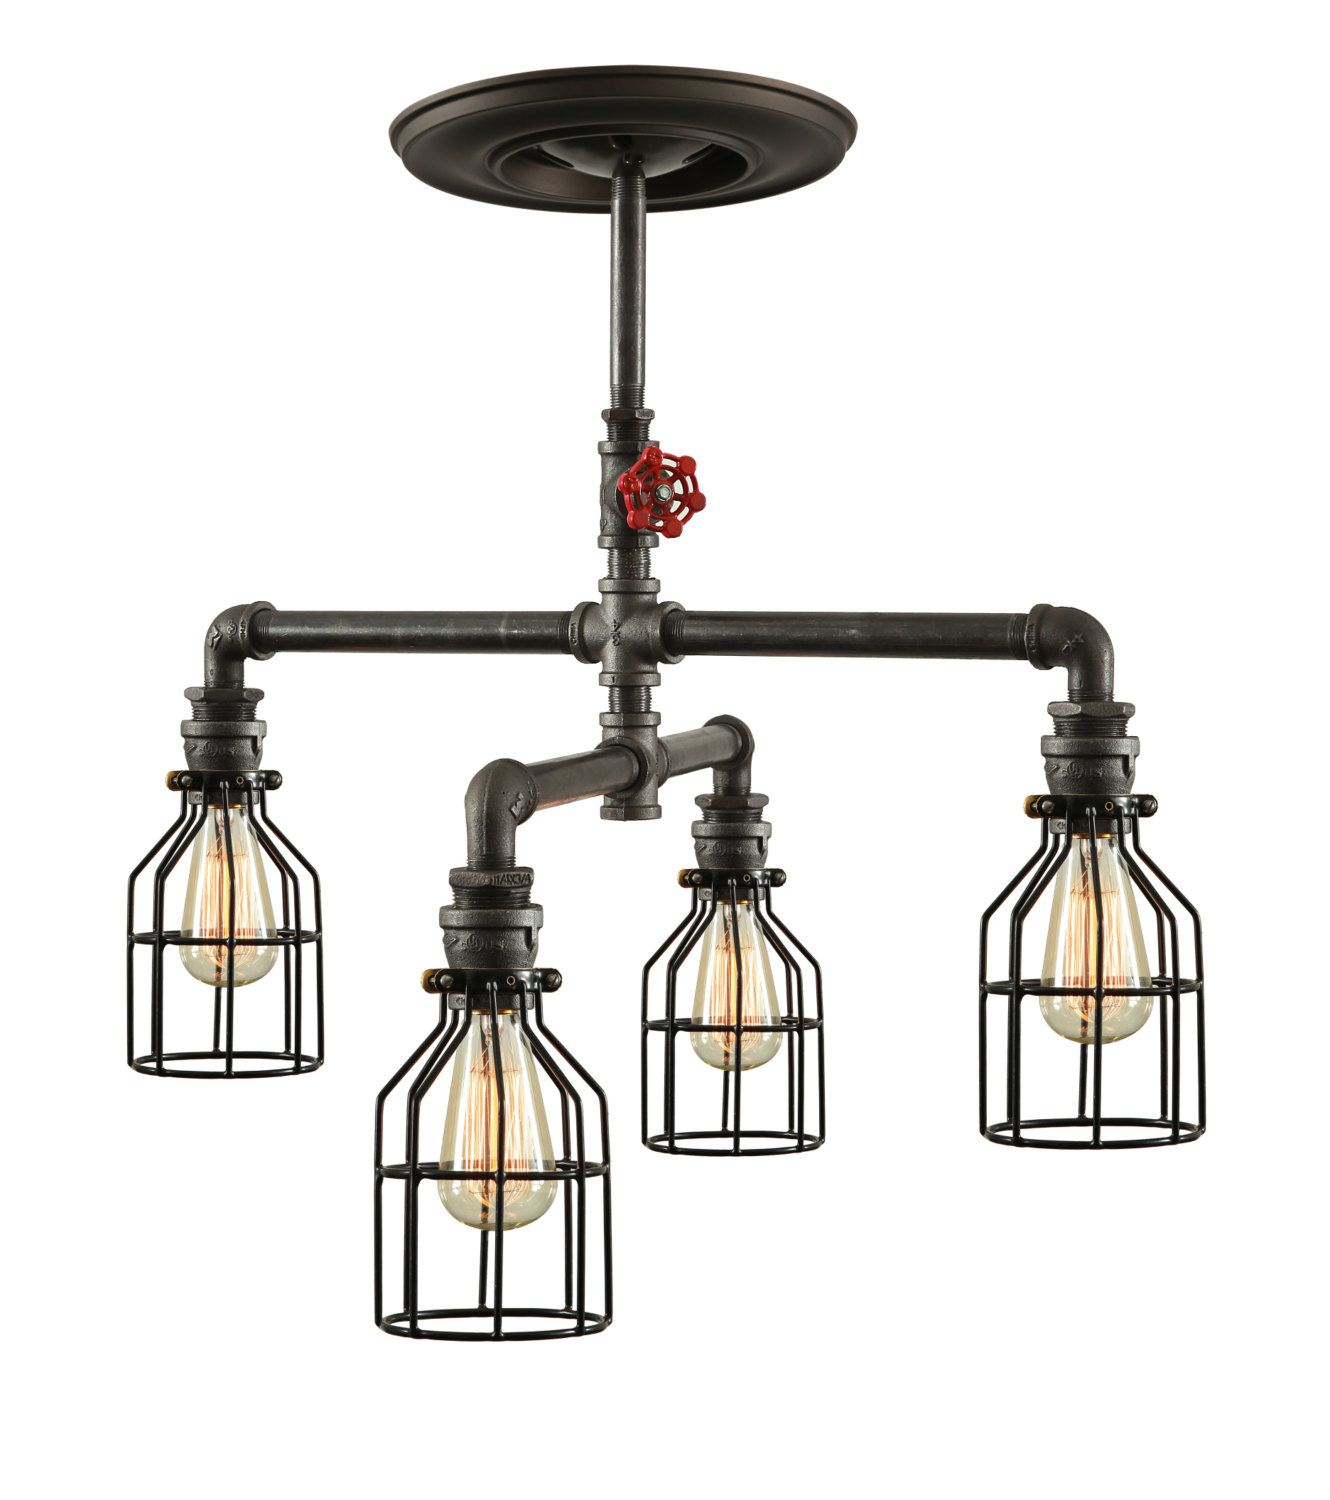 steampunk industrial ceiling light industrial pipe light industrial ceiling fixture bar. Black Bedroom Furniture Sets. Home Design Ideas